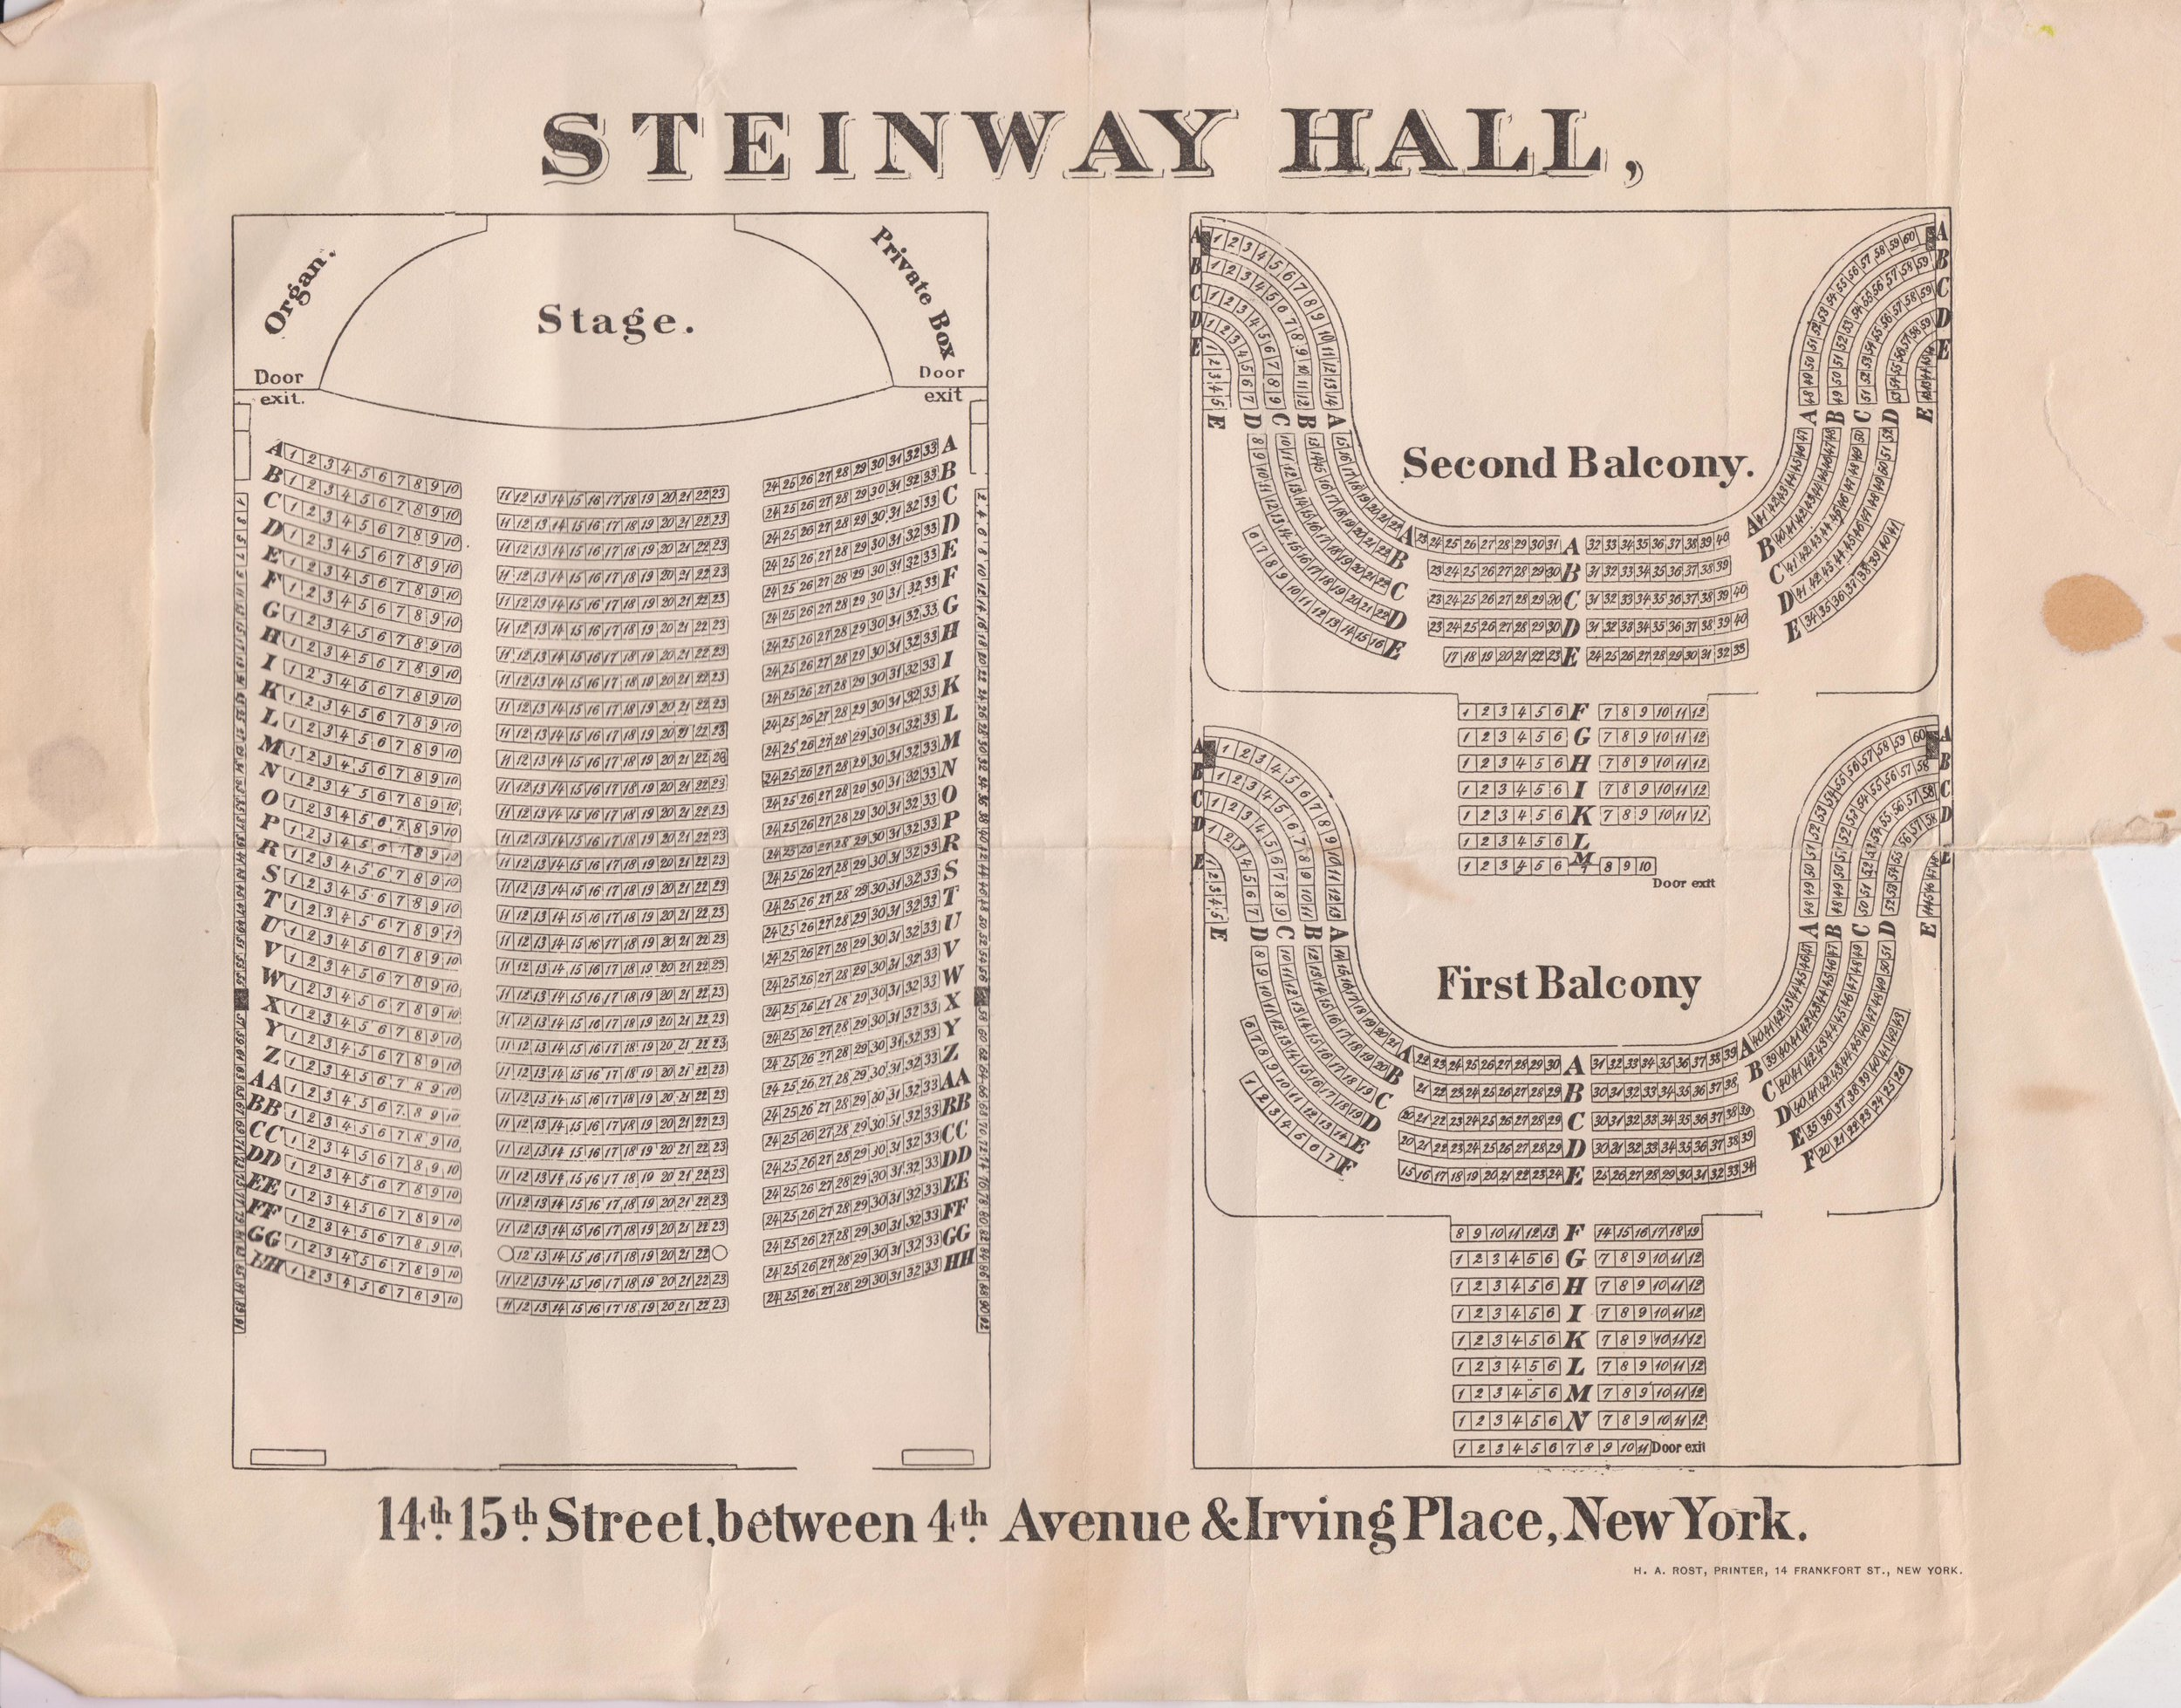 Diagram of the layout of Steinway Hall, undated. Mayor Hugh J. Grant subject files, NYC Municipal Archives.